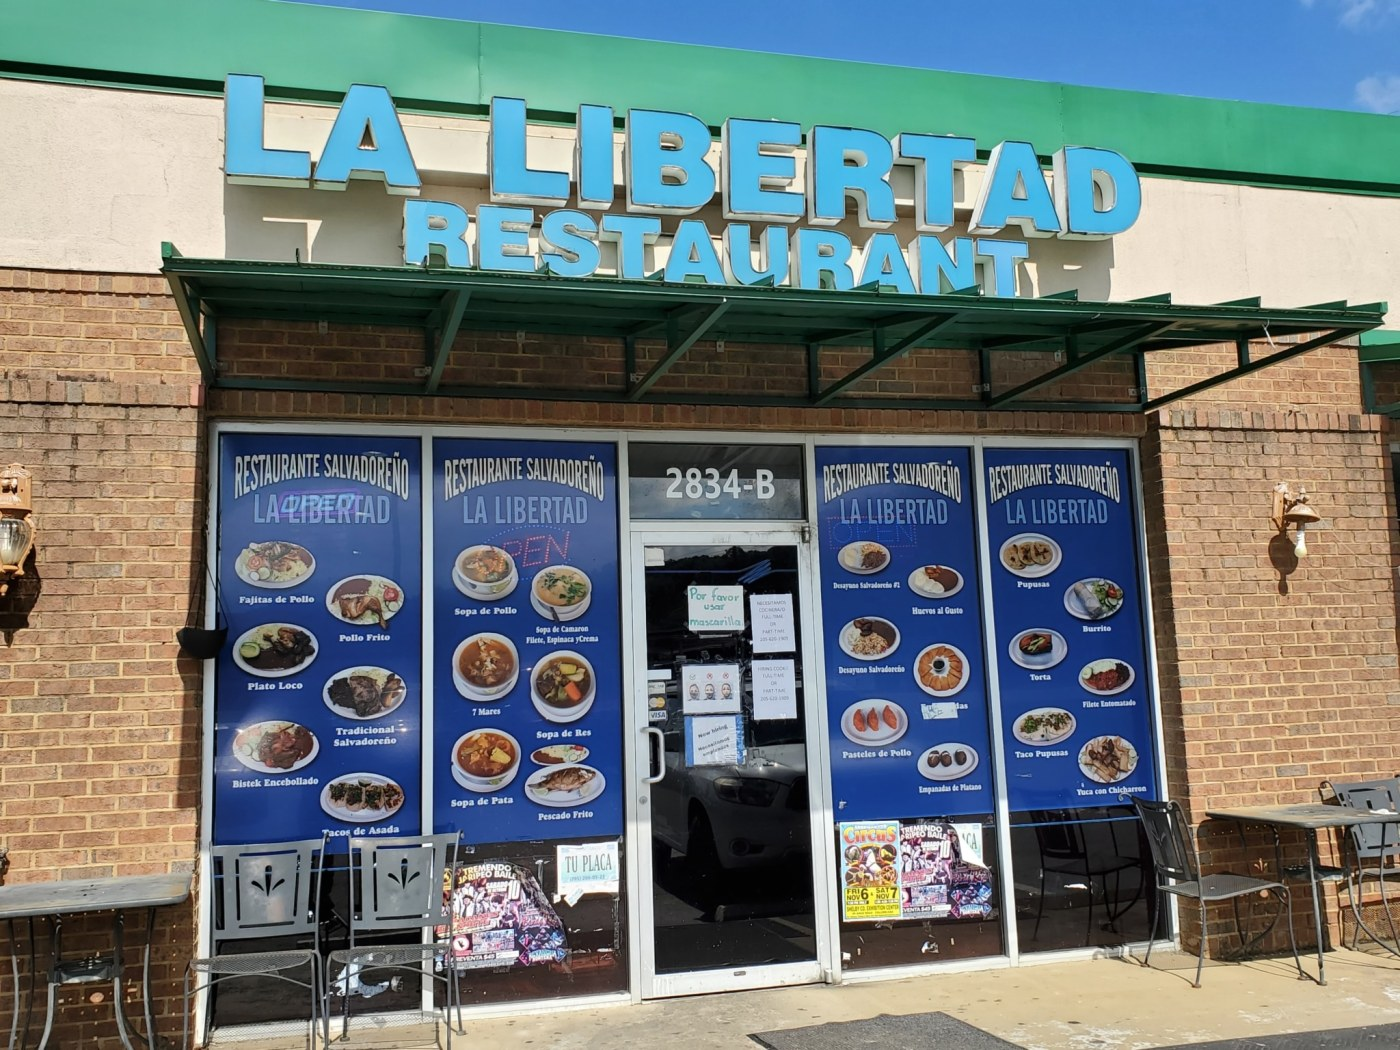 La Libertad storefront with pictures of menu items